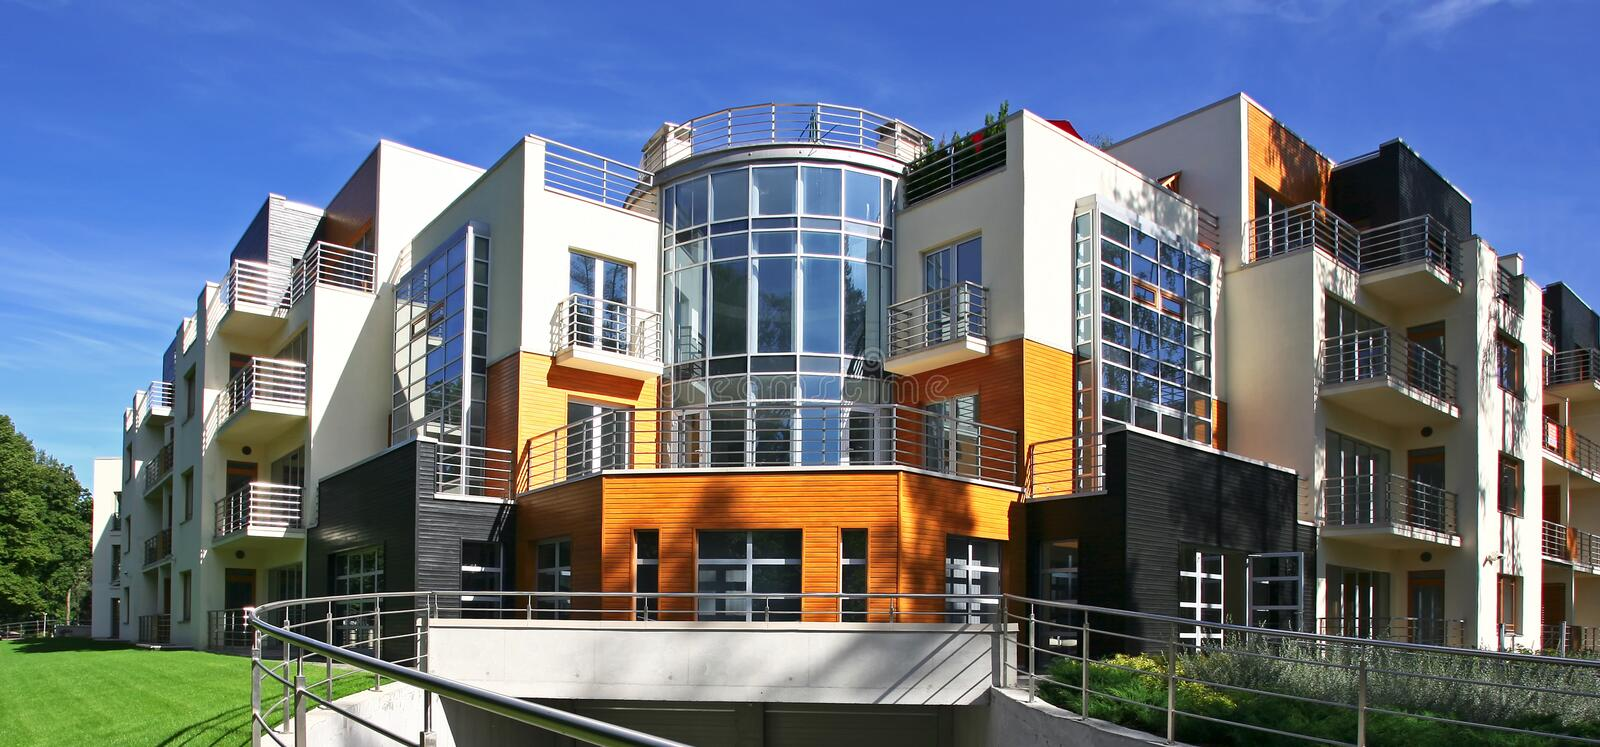 New modern apartments. Just built new modern apartments royalty free stock photos